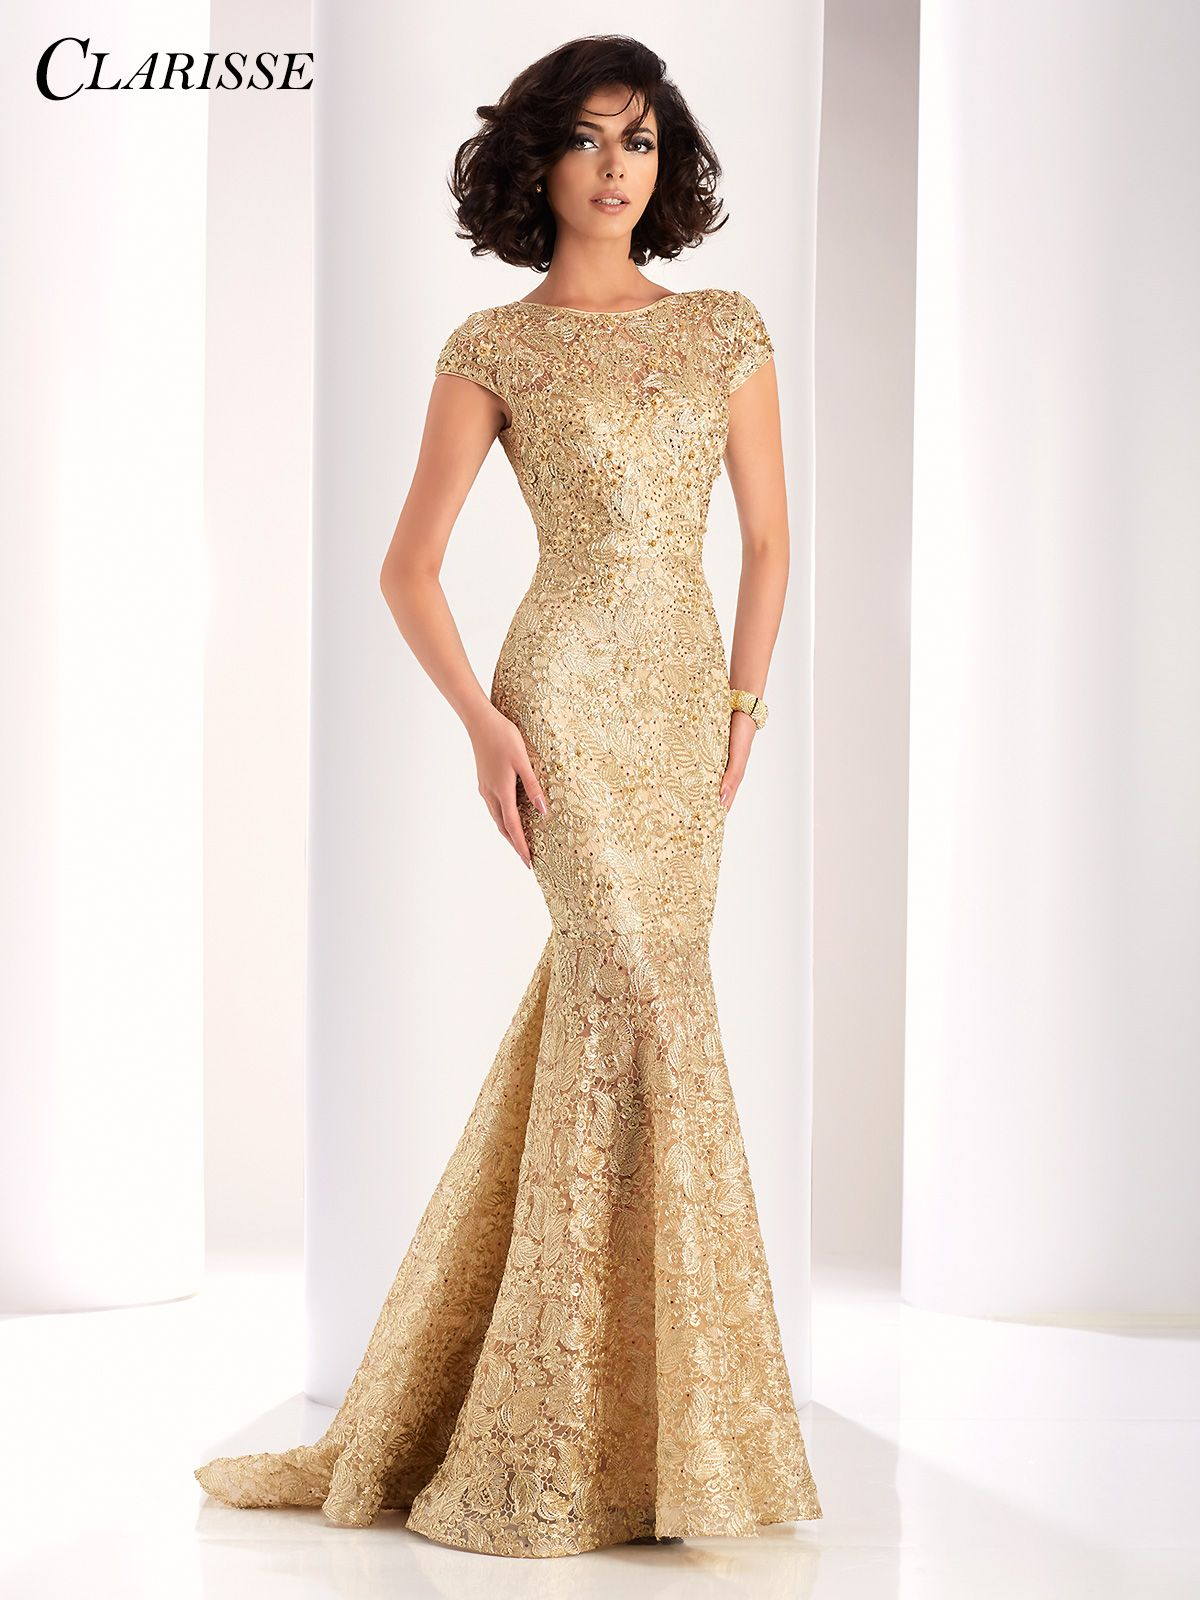 Clarisse Gold Lace Mermaid Evening Gown 4852 d9a8bcf5b7da